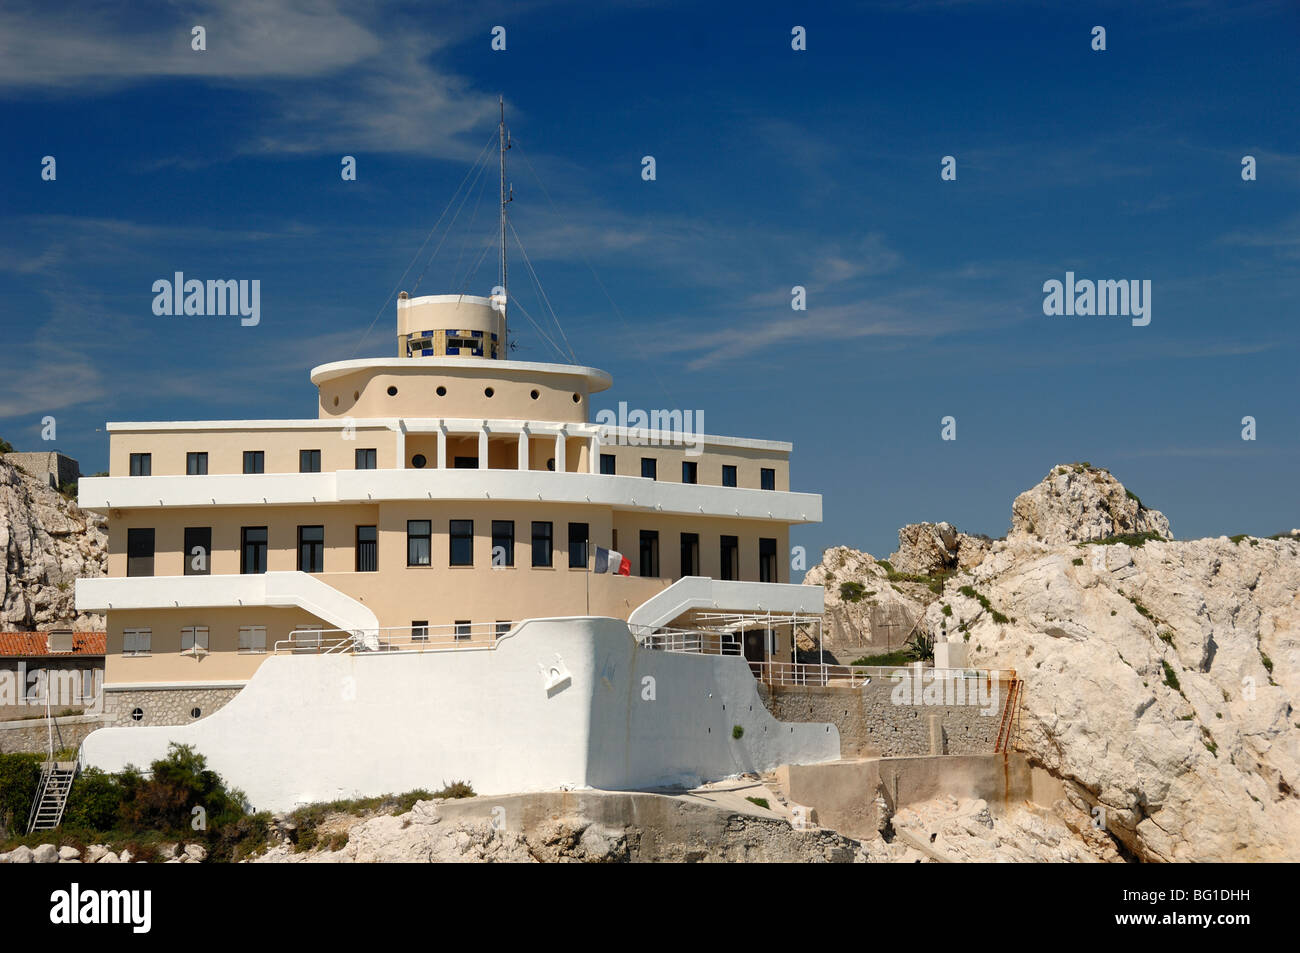 Boat-Shaped Pilotage Station Building in Shape of Ship or Boat, Île Ratonneau Island, Frioul, Marseille or Marseilles, Stock Photo